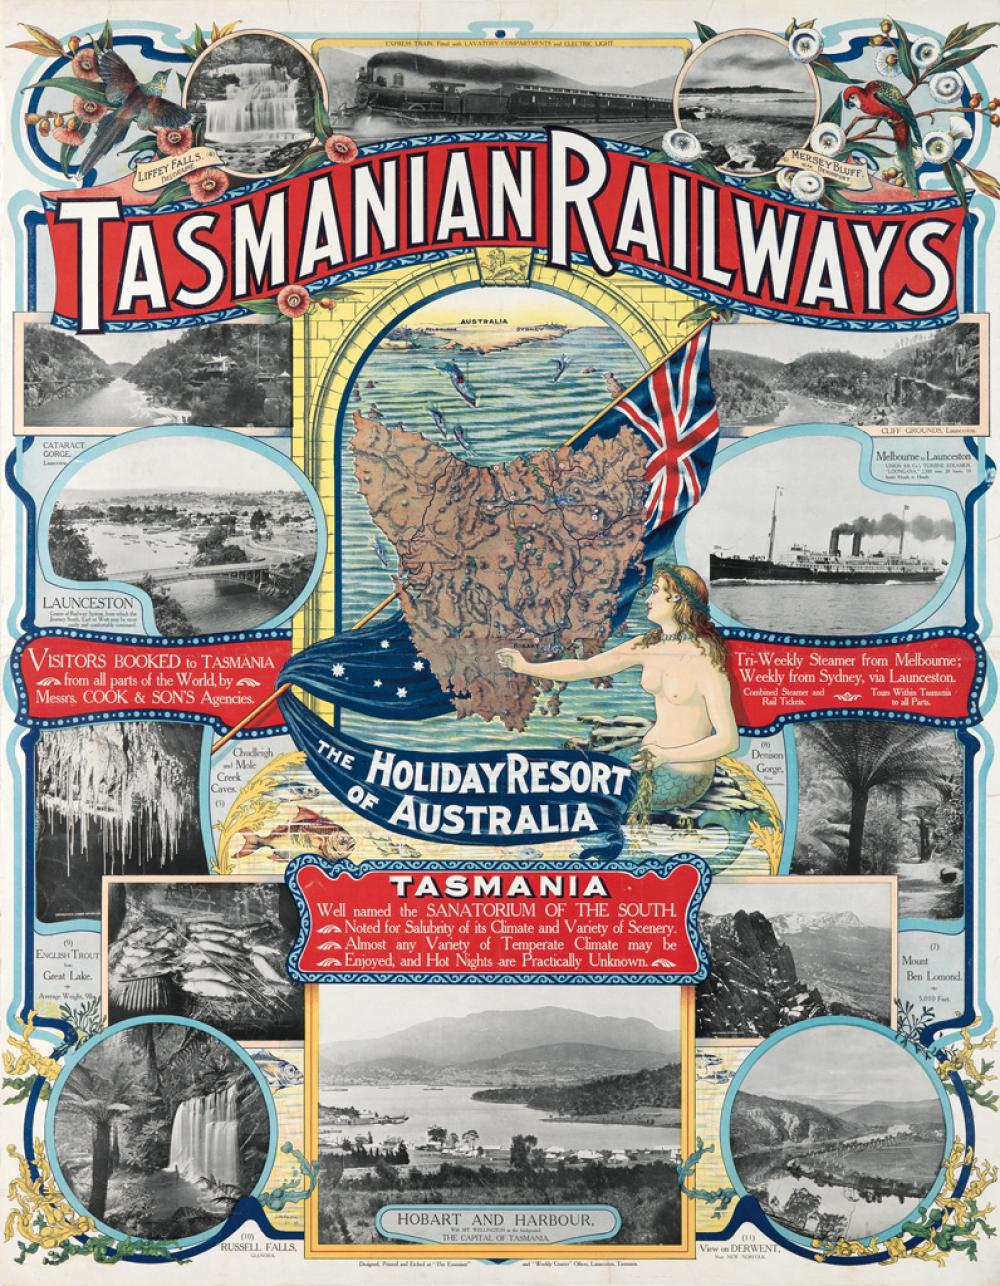 J.M. PROCTOR (DATES UNKNOWN). TASMANIAN RAILWAYS / THE HOLIDAY RESORT OF AUSTRALIA. 1905. 45x35 inches, 115x89 cm.